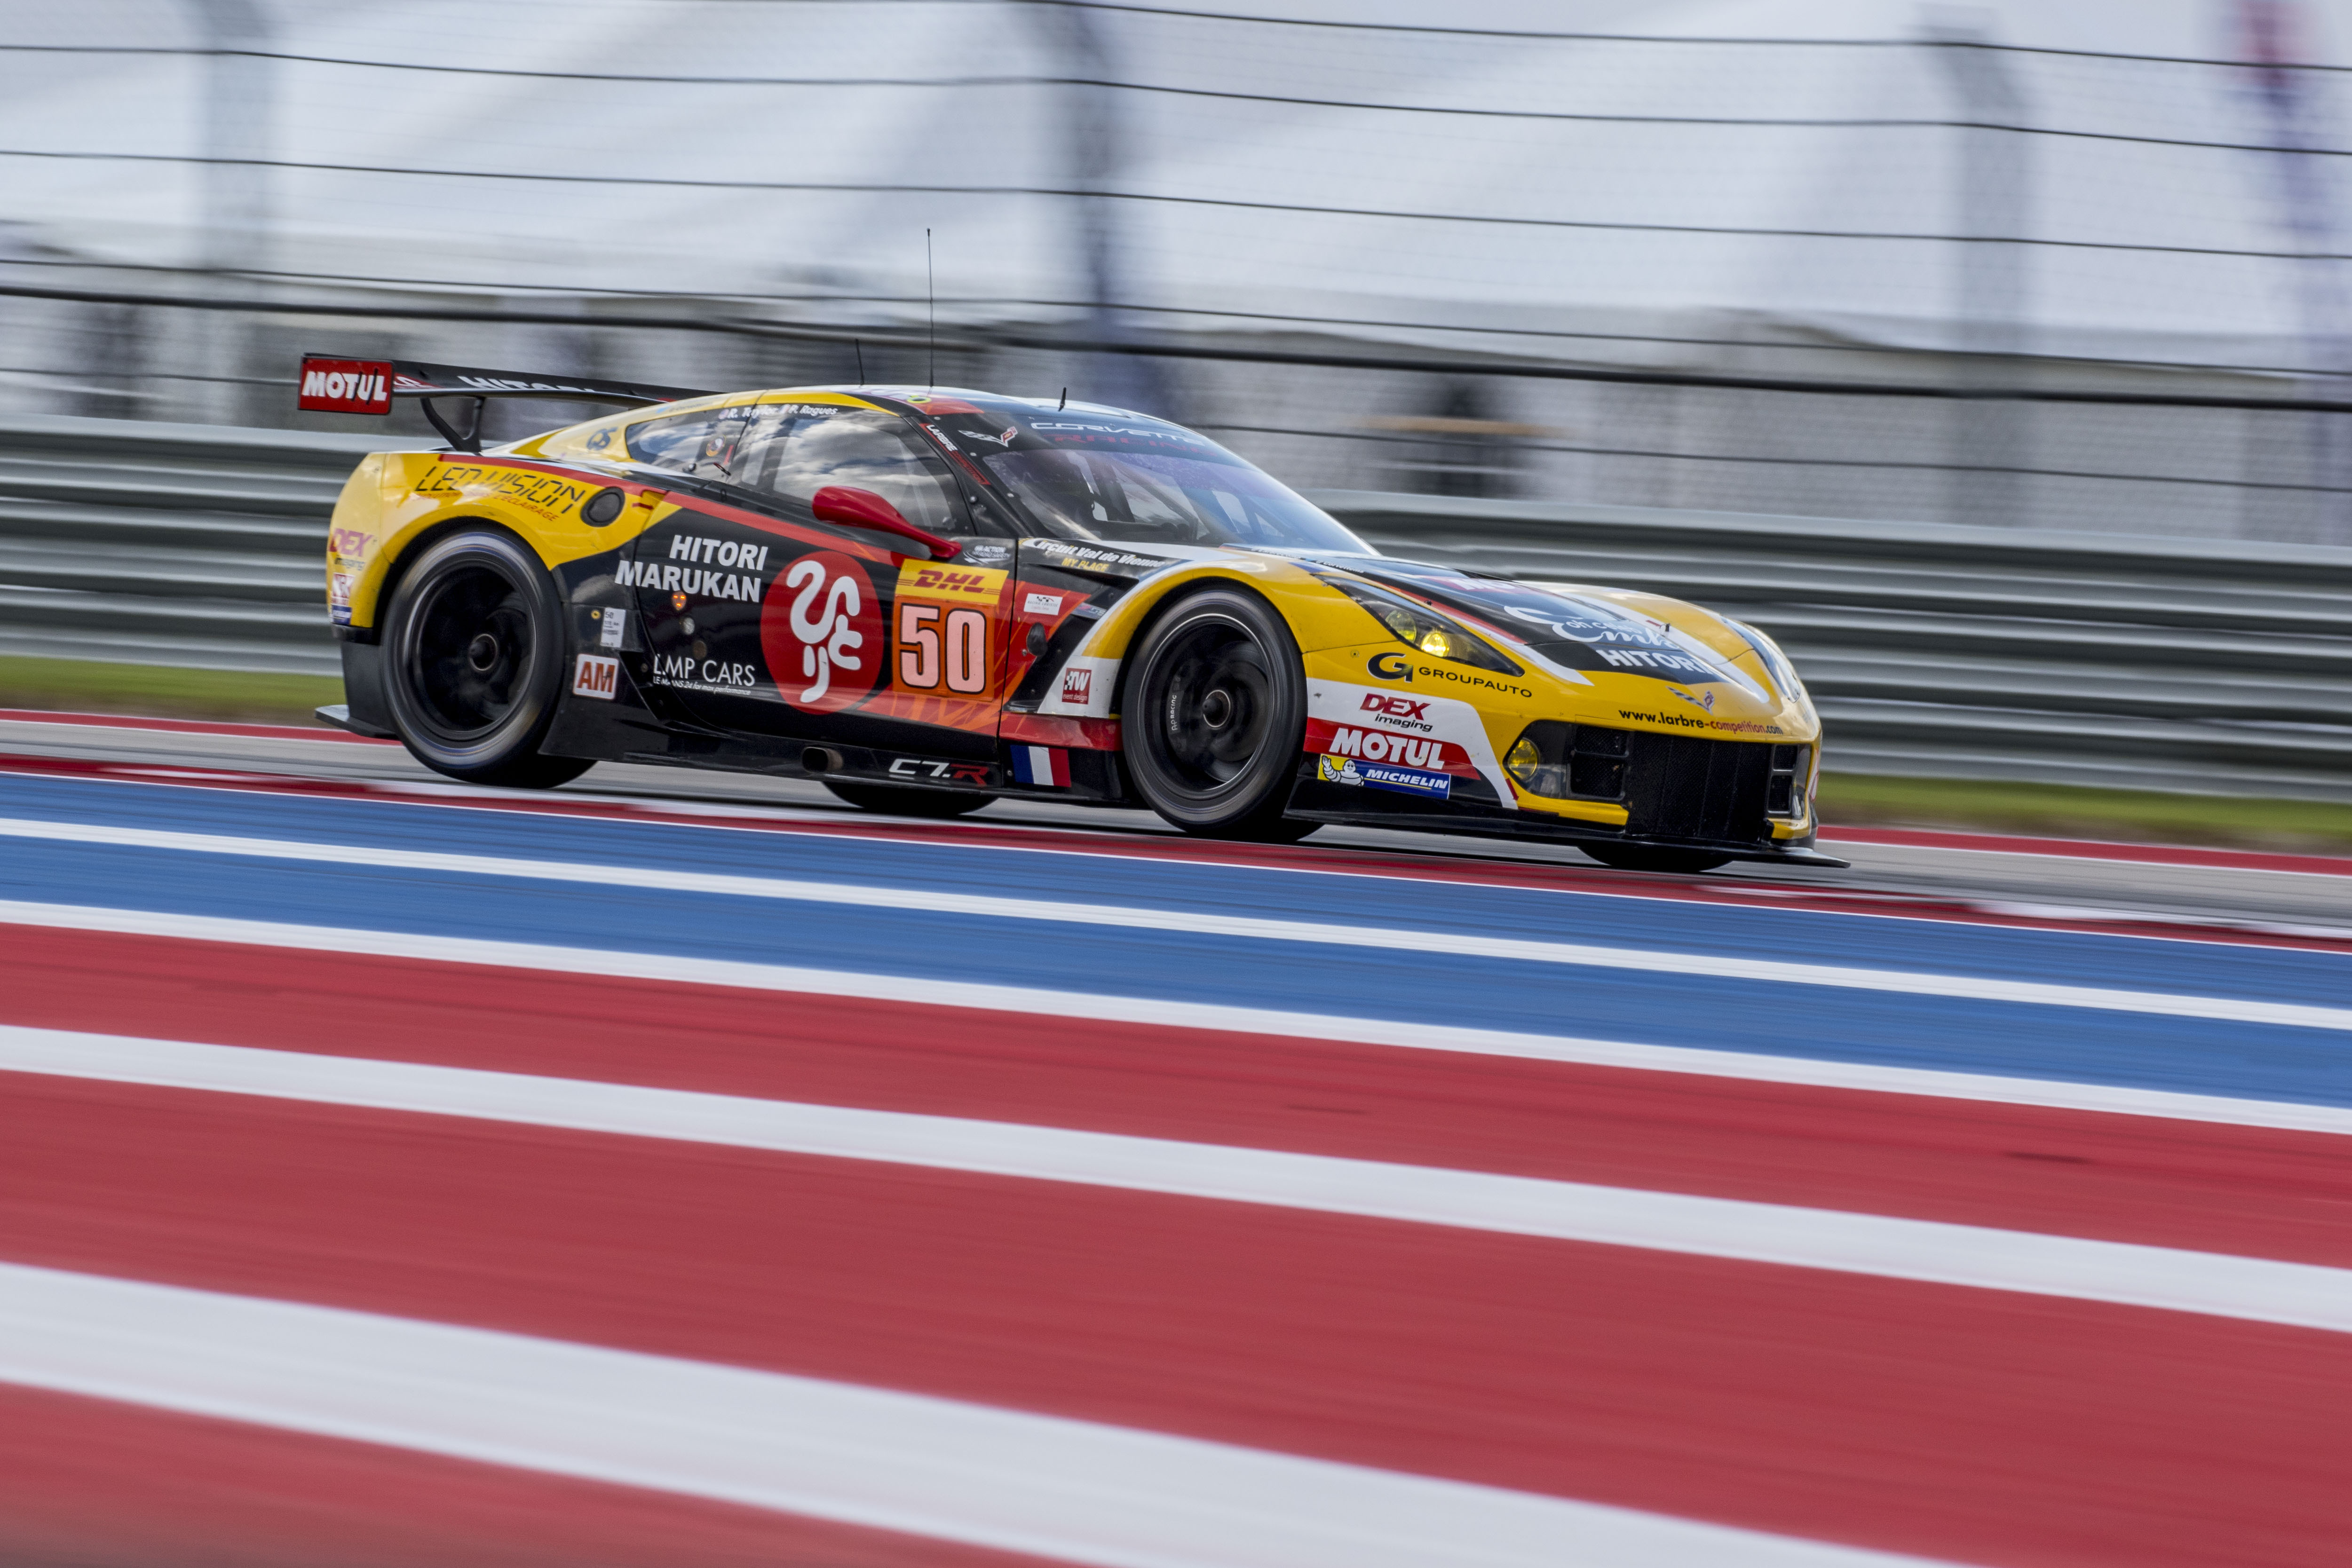 WORLD ENDURANCE CHAMPIONSHIP – LARBRE COMPETITION – CORVETTE C7R GTE